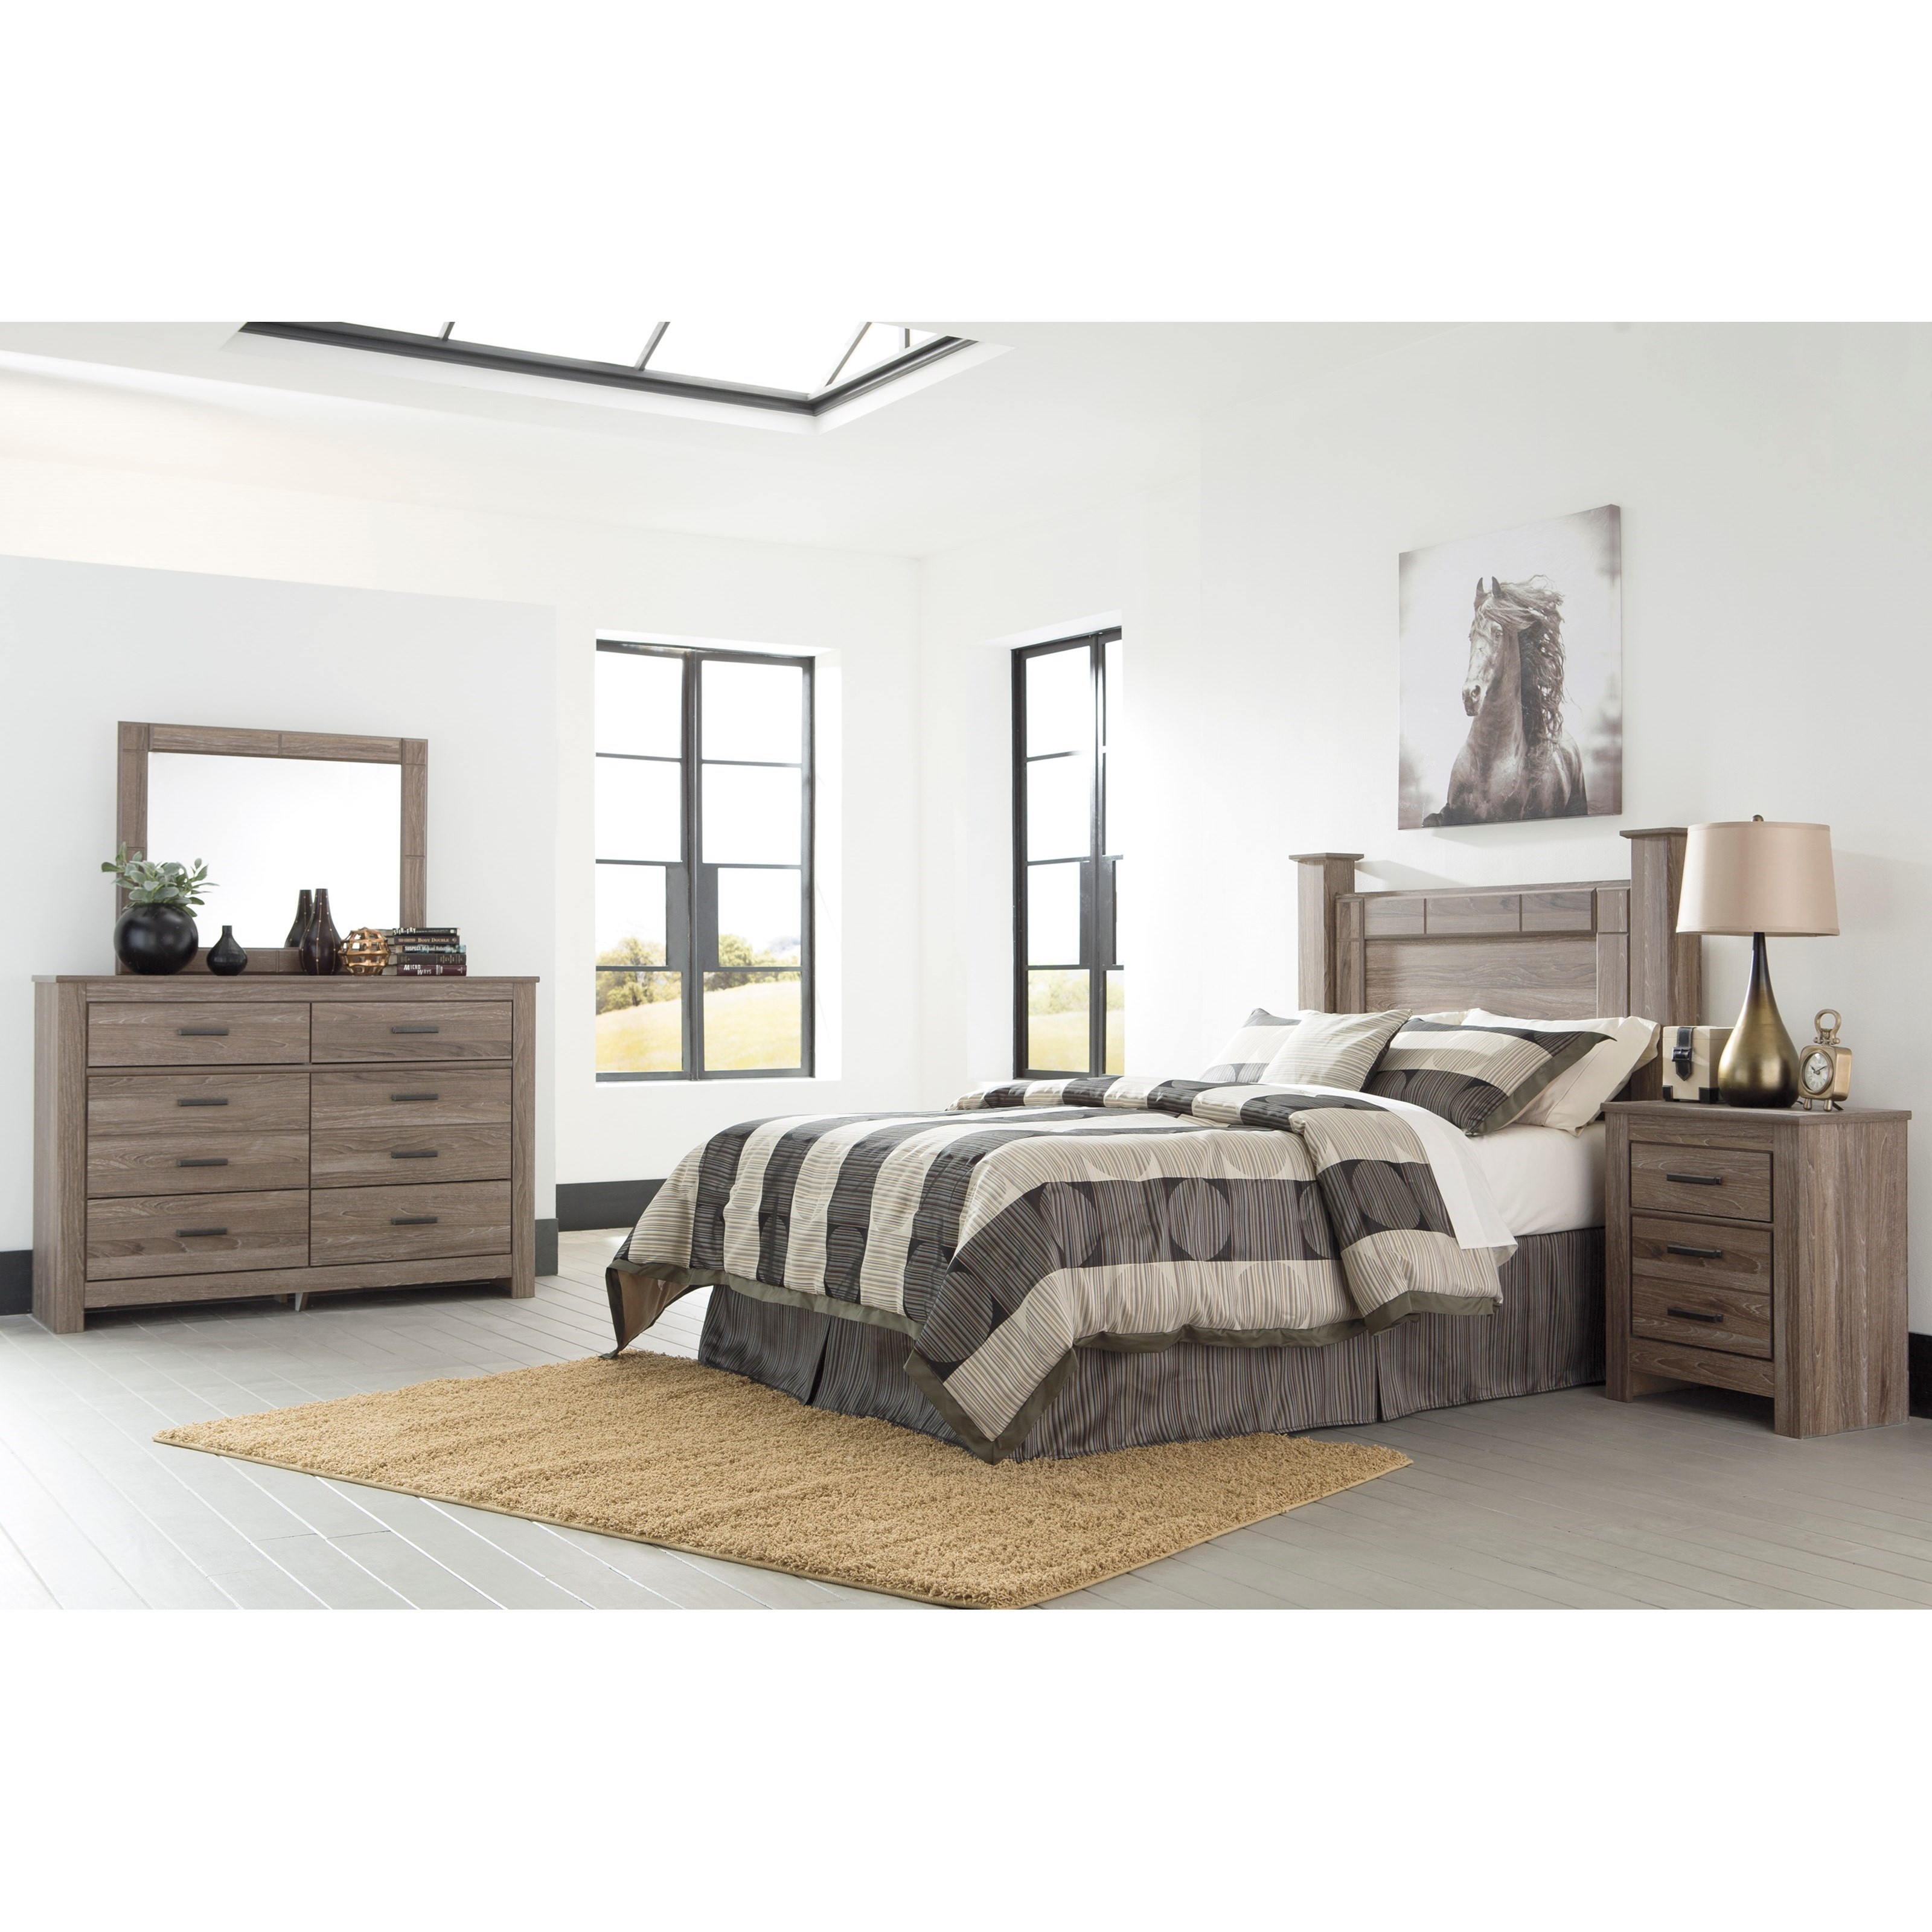 Signature Design by Ashley Waldrew Queen Bedroom Group